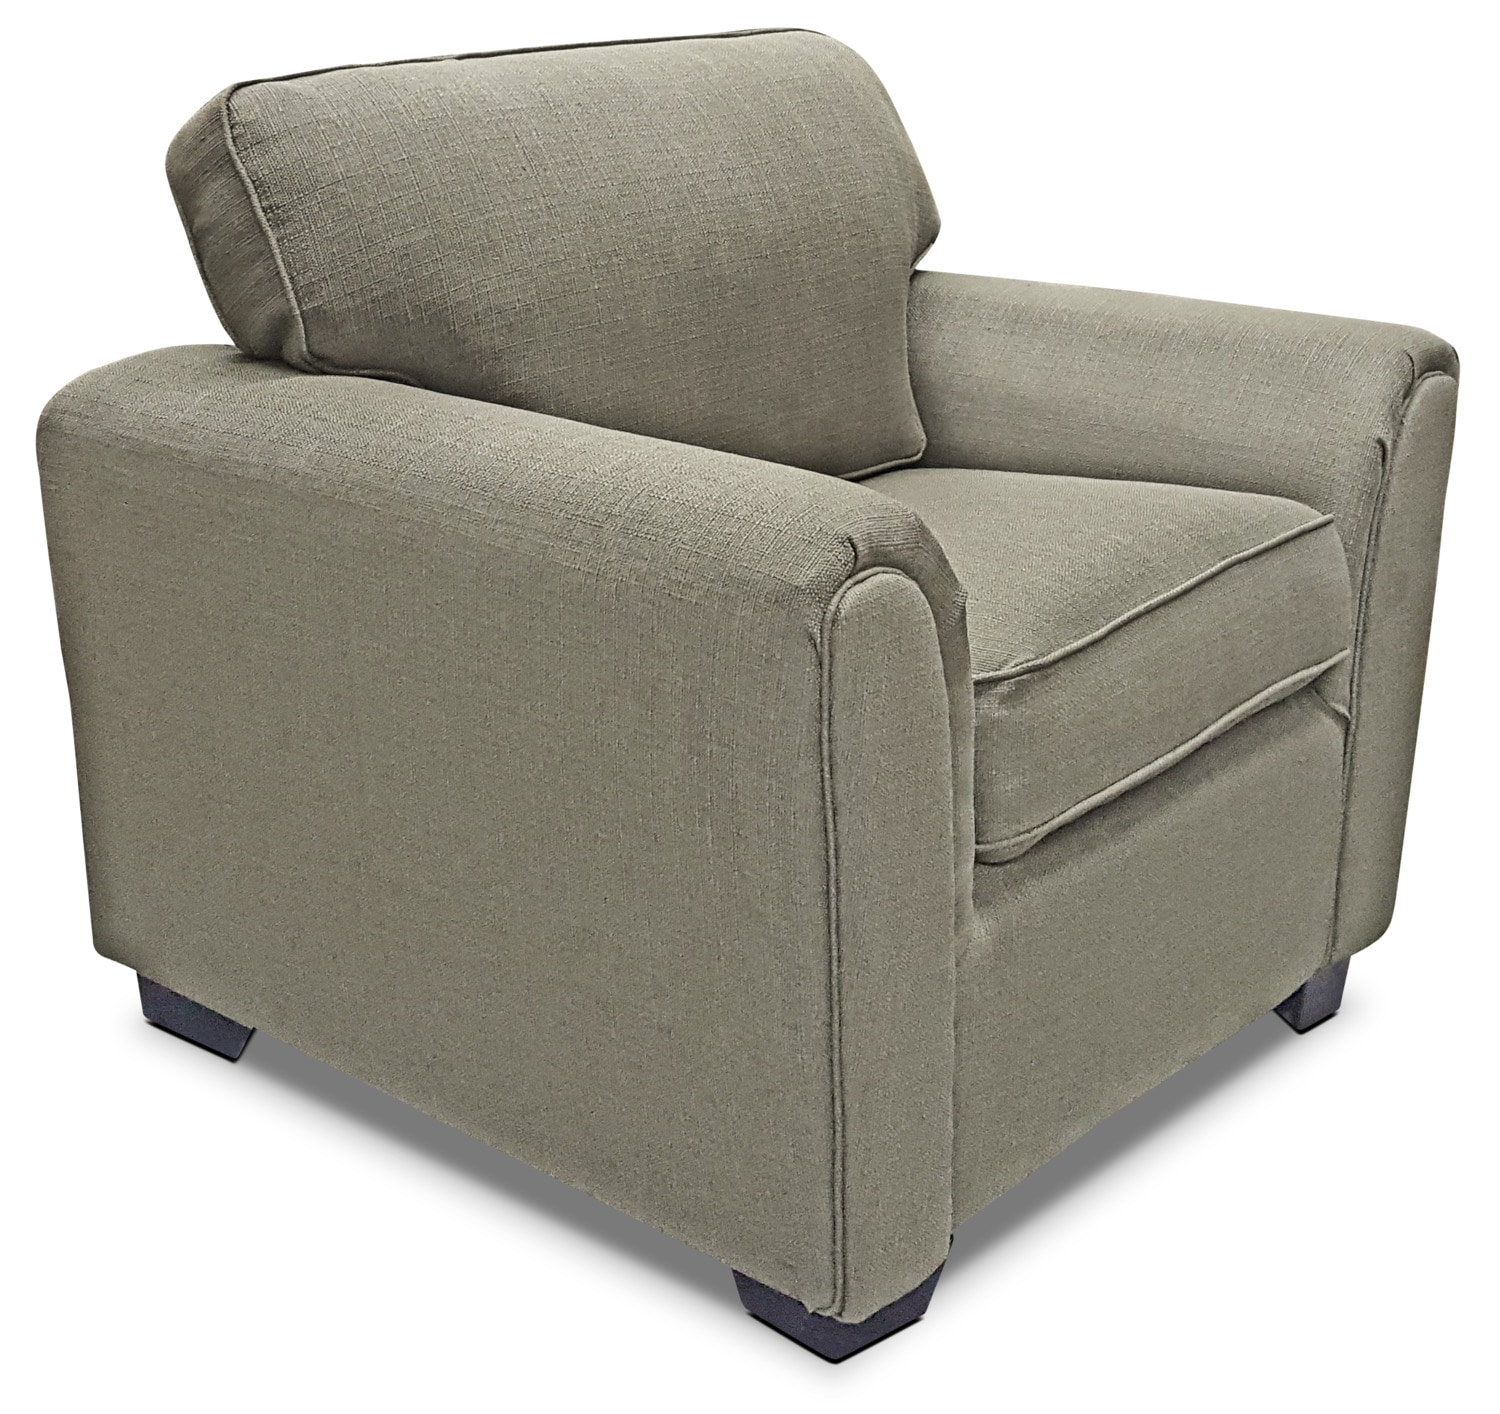 Brynn Linen-Look Fabric Chair – Taupe